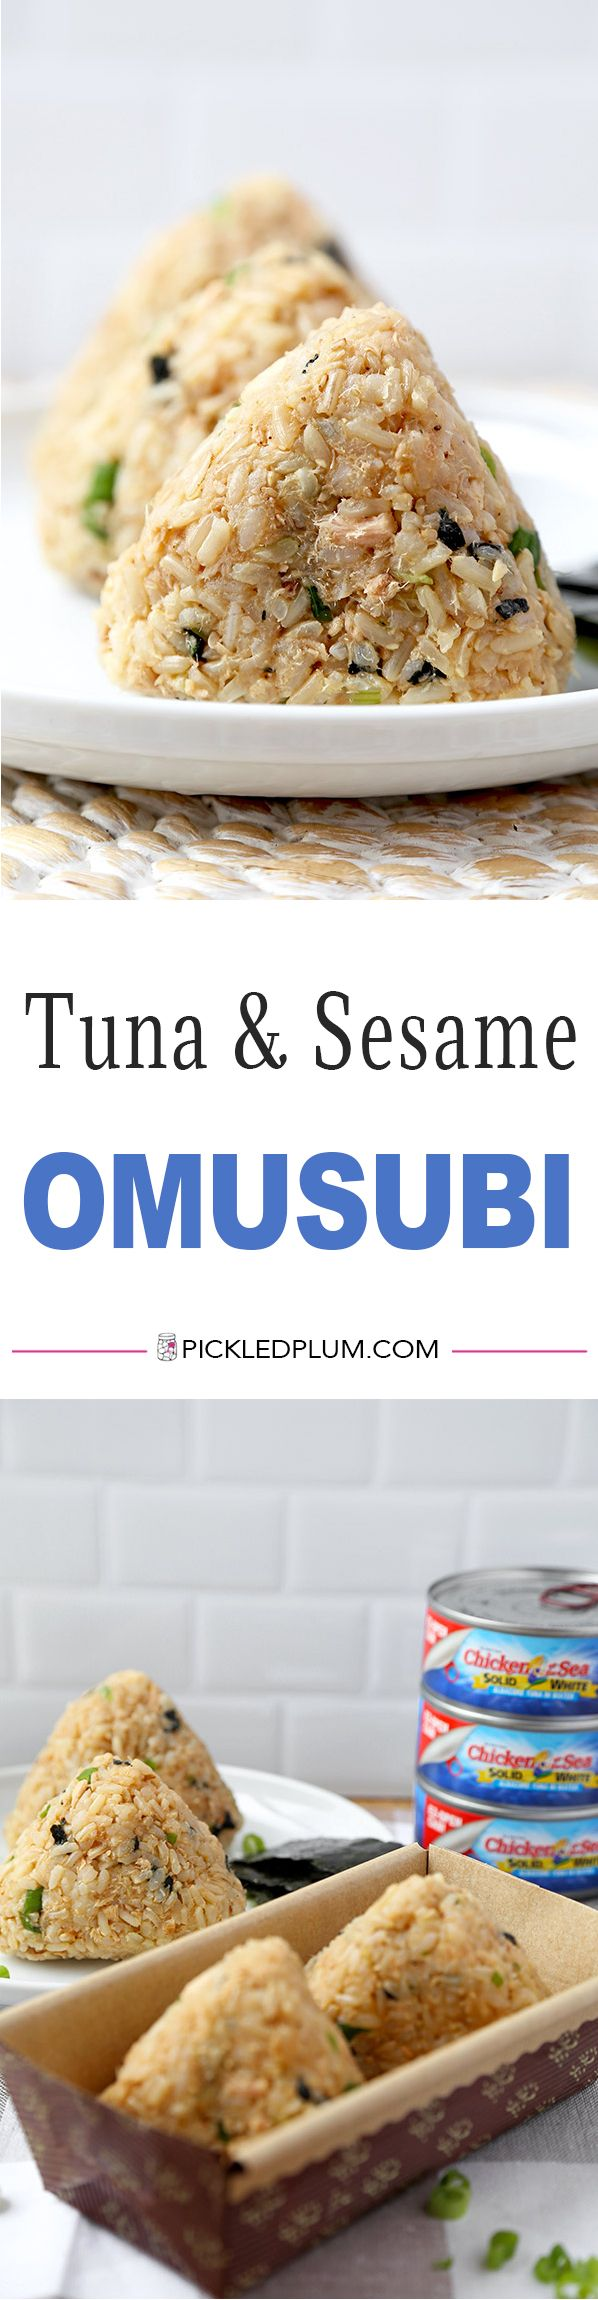 Tuna and Sesame Omusubi - Savory, sweet and nutty rice balls filled with crunchy and meaty ingredients – it's simply delicious! Recipe, healthy, rice balls, Japanese food, snack, onigiri | pickledplum.com